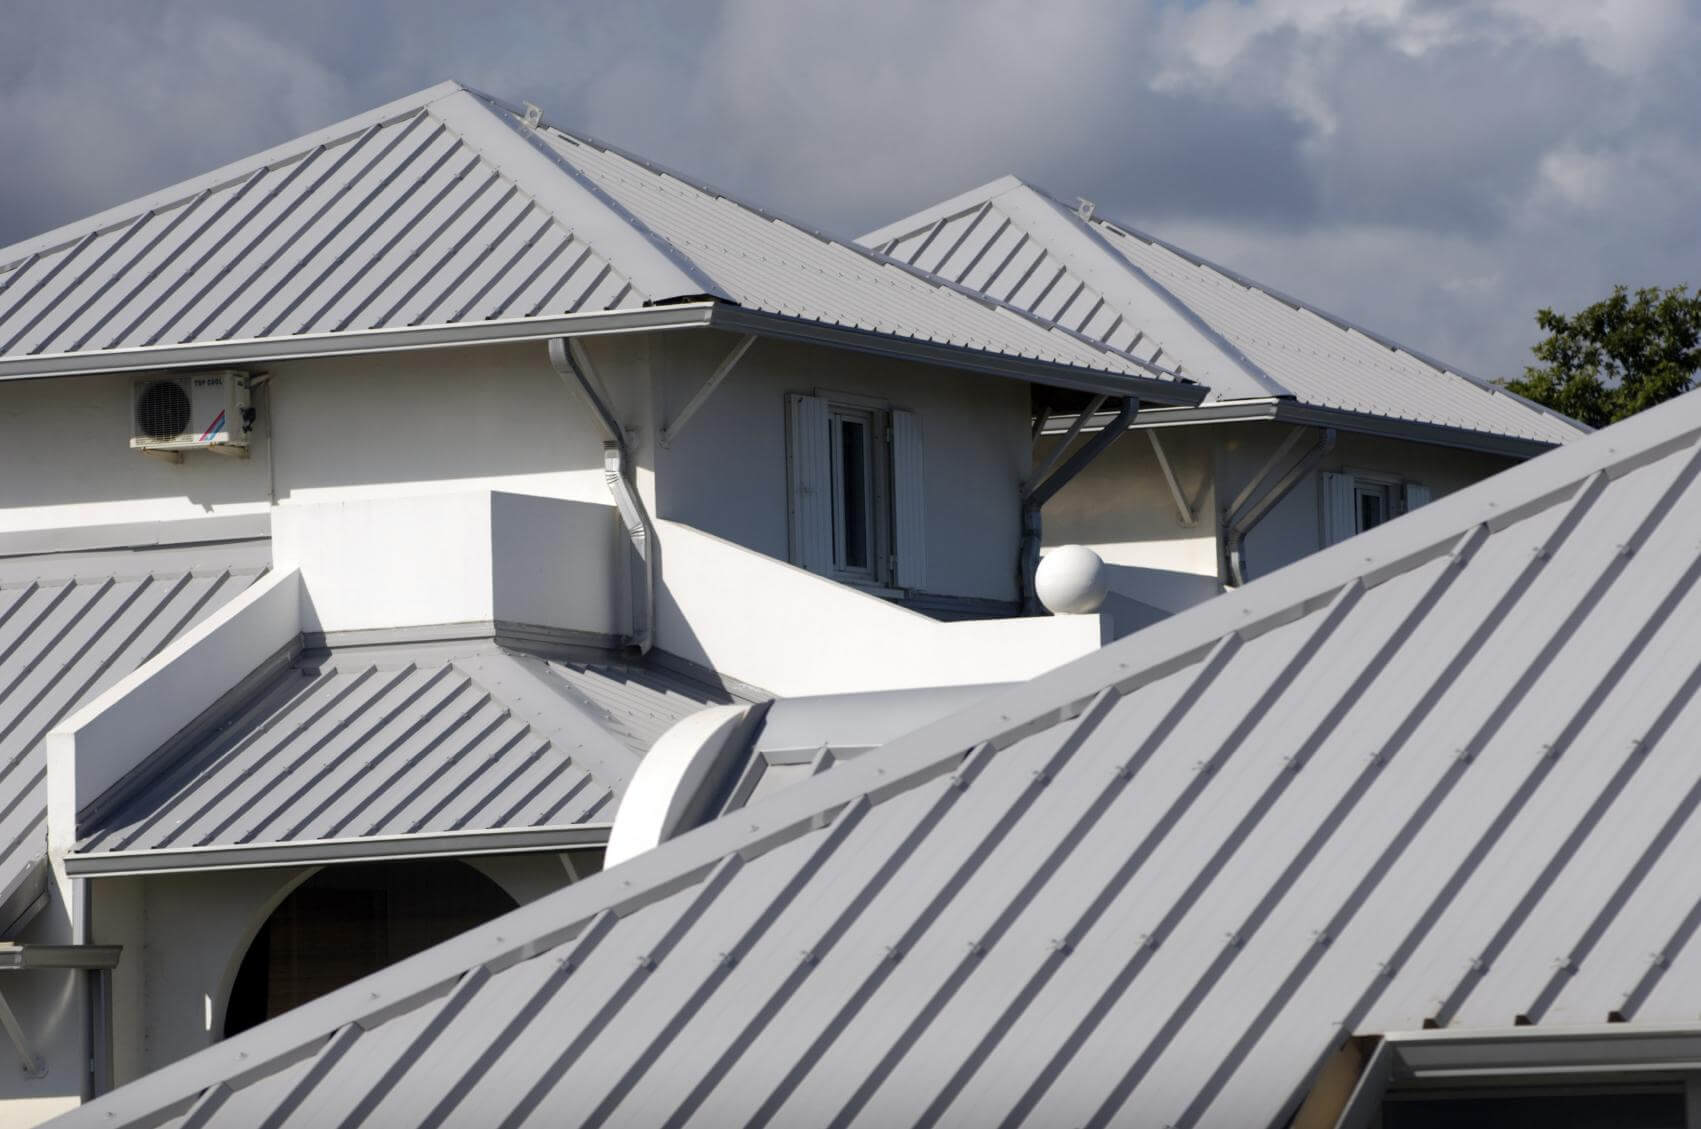 Metal Roofs | The Colony Handyman 469-521-9776